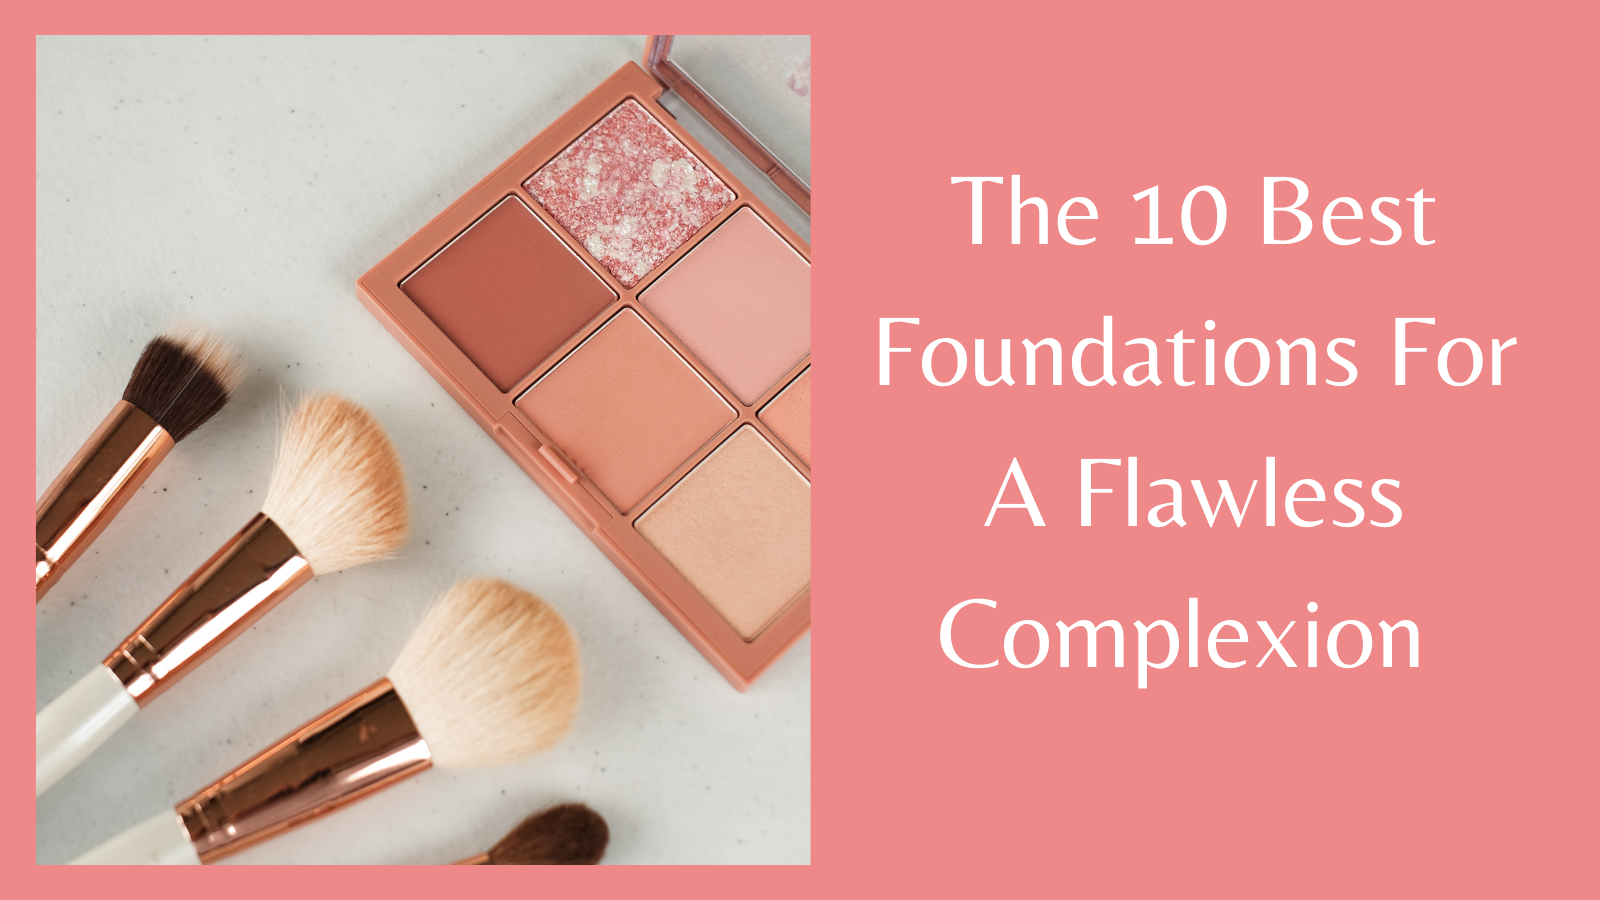 The 10 Best Foundations - Makeup and Brushes